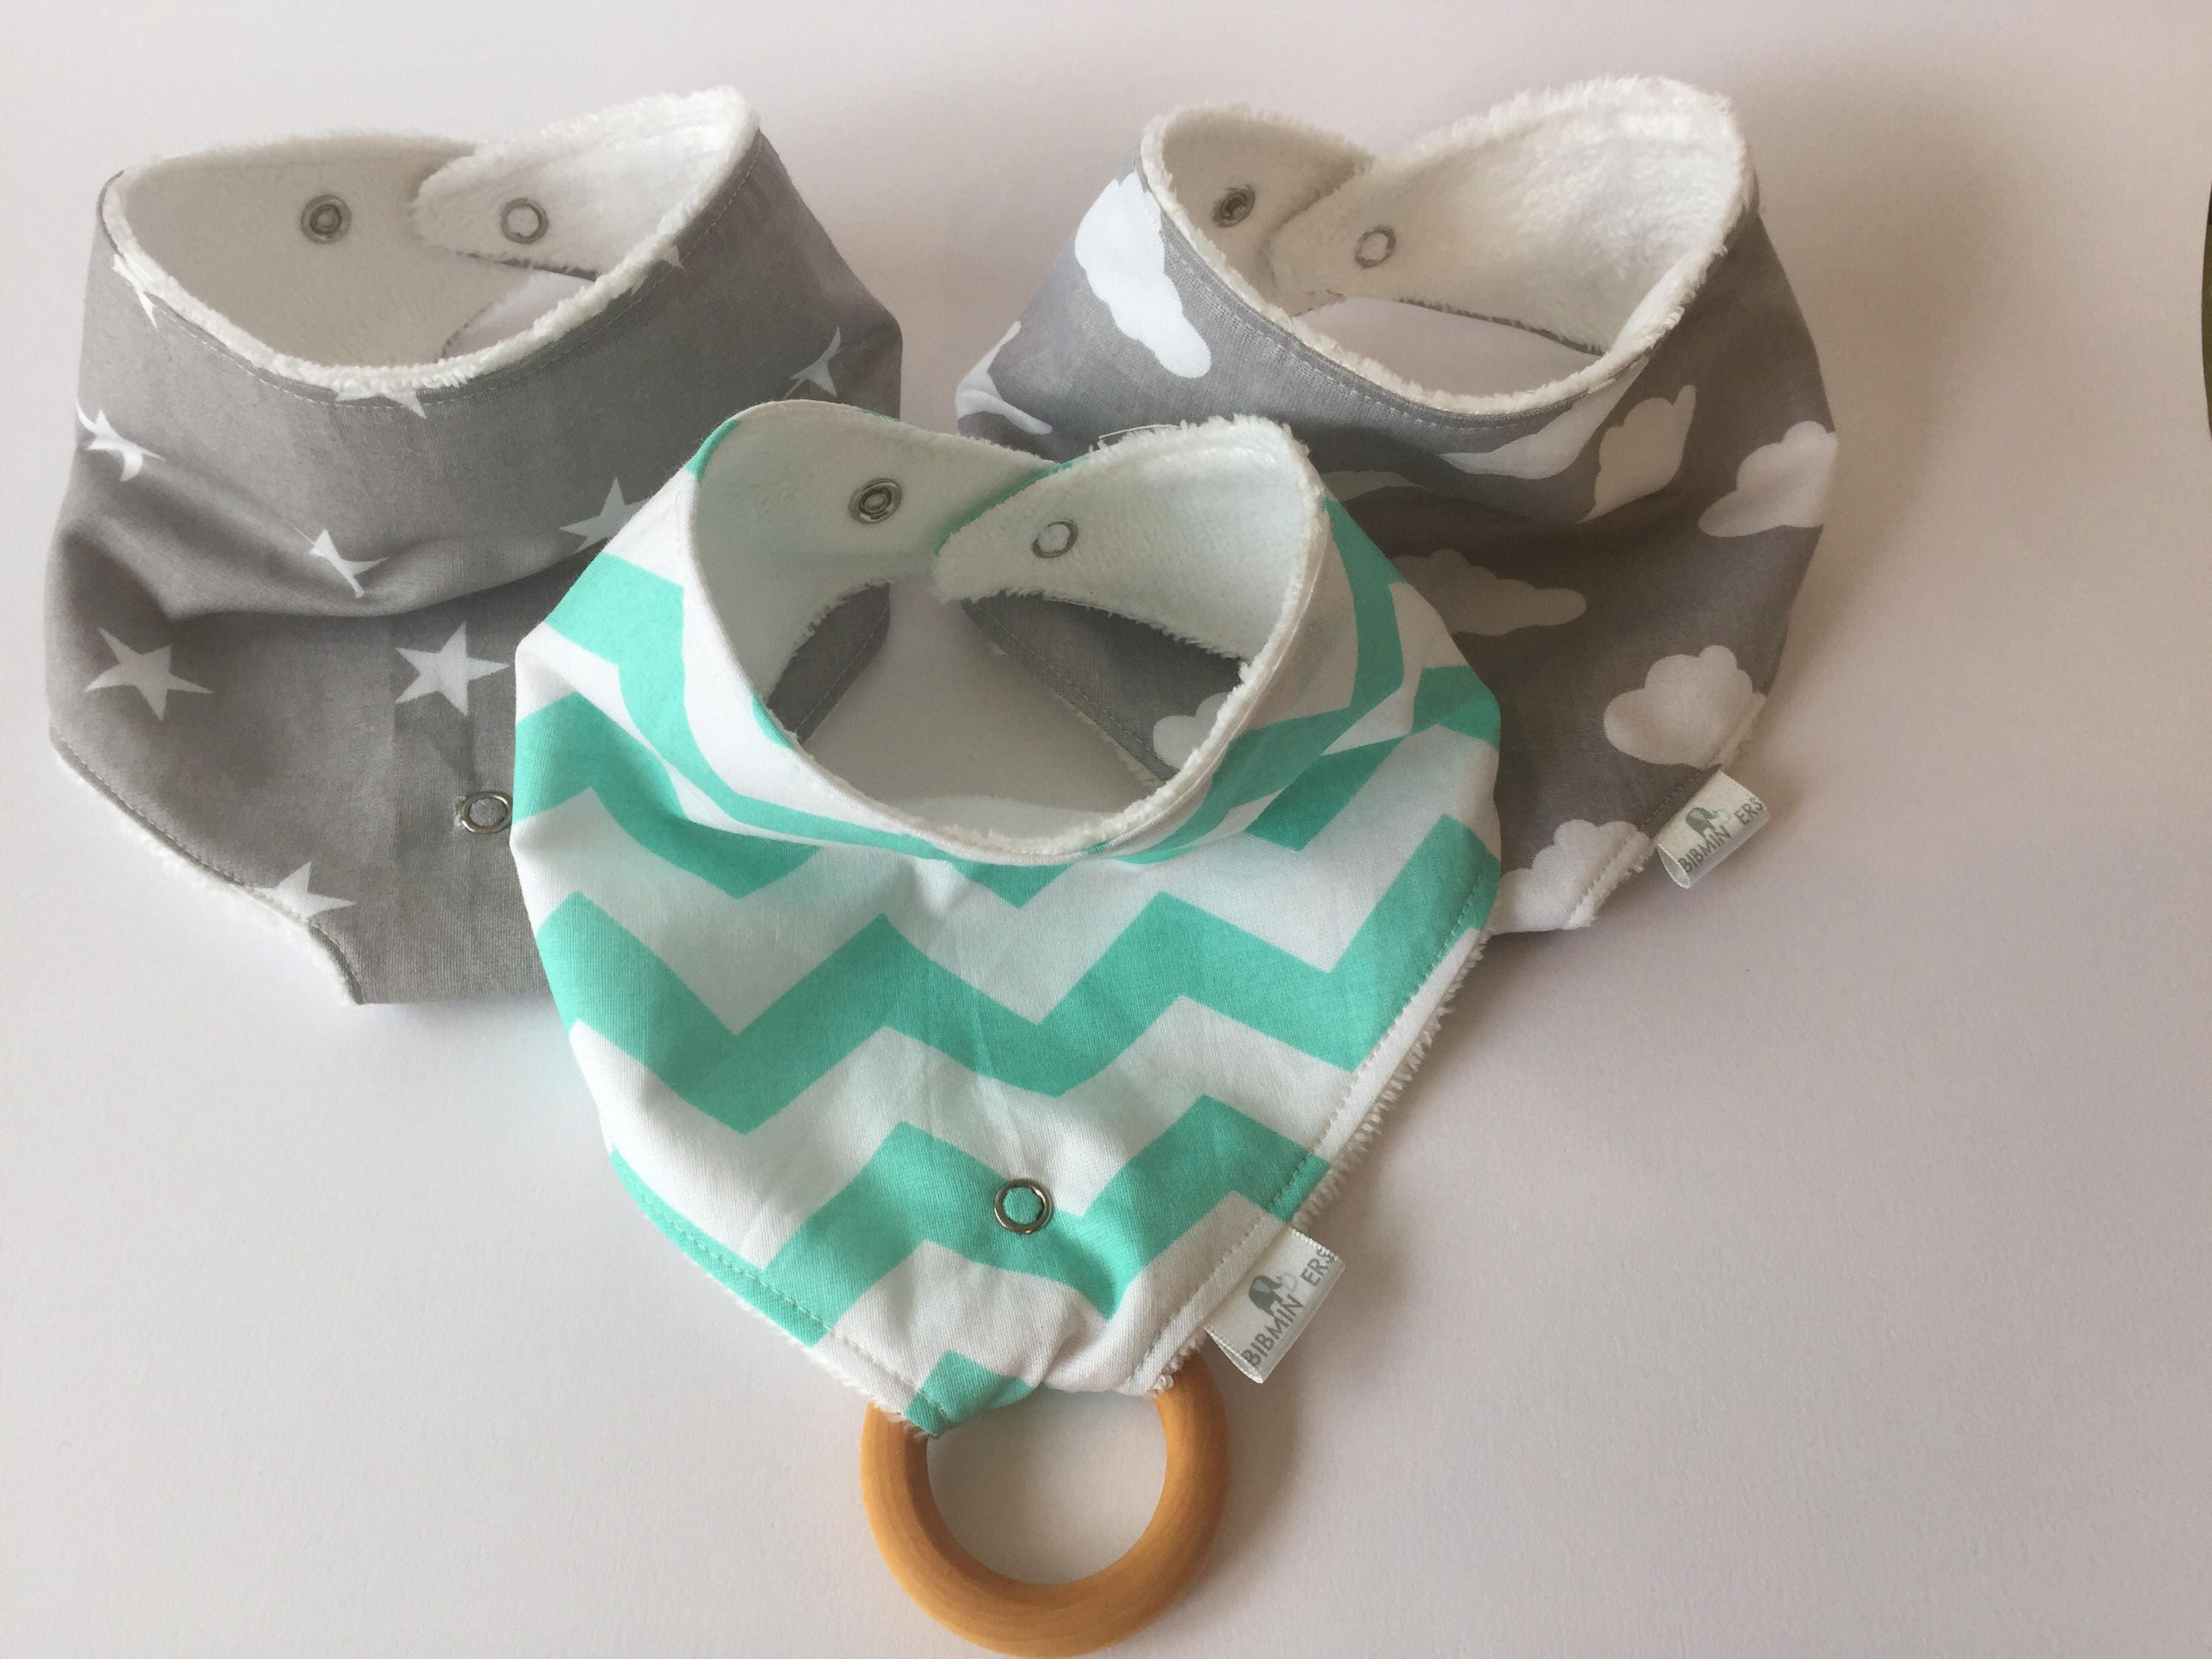 Baby gift set. Stylish Mint and Grey dribble bib gift set with detachable wooden teething toy